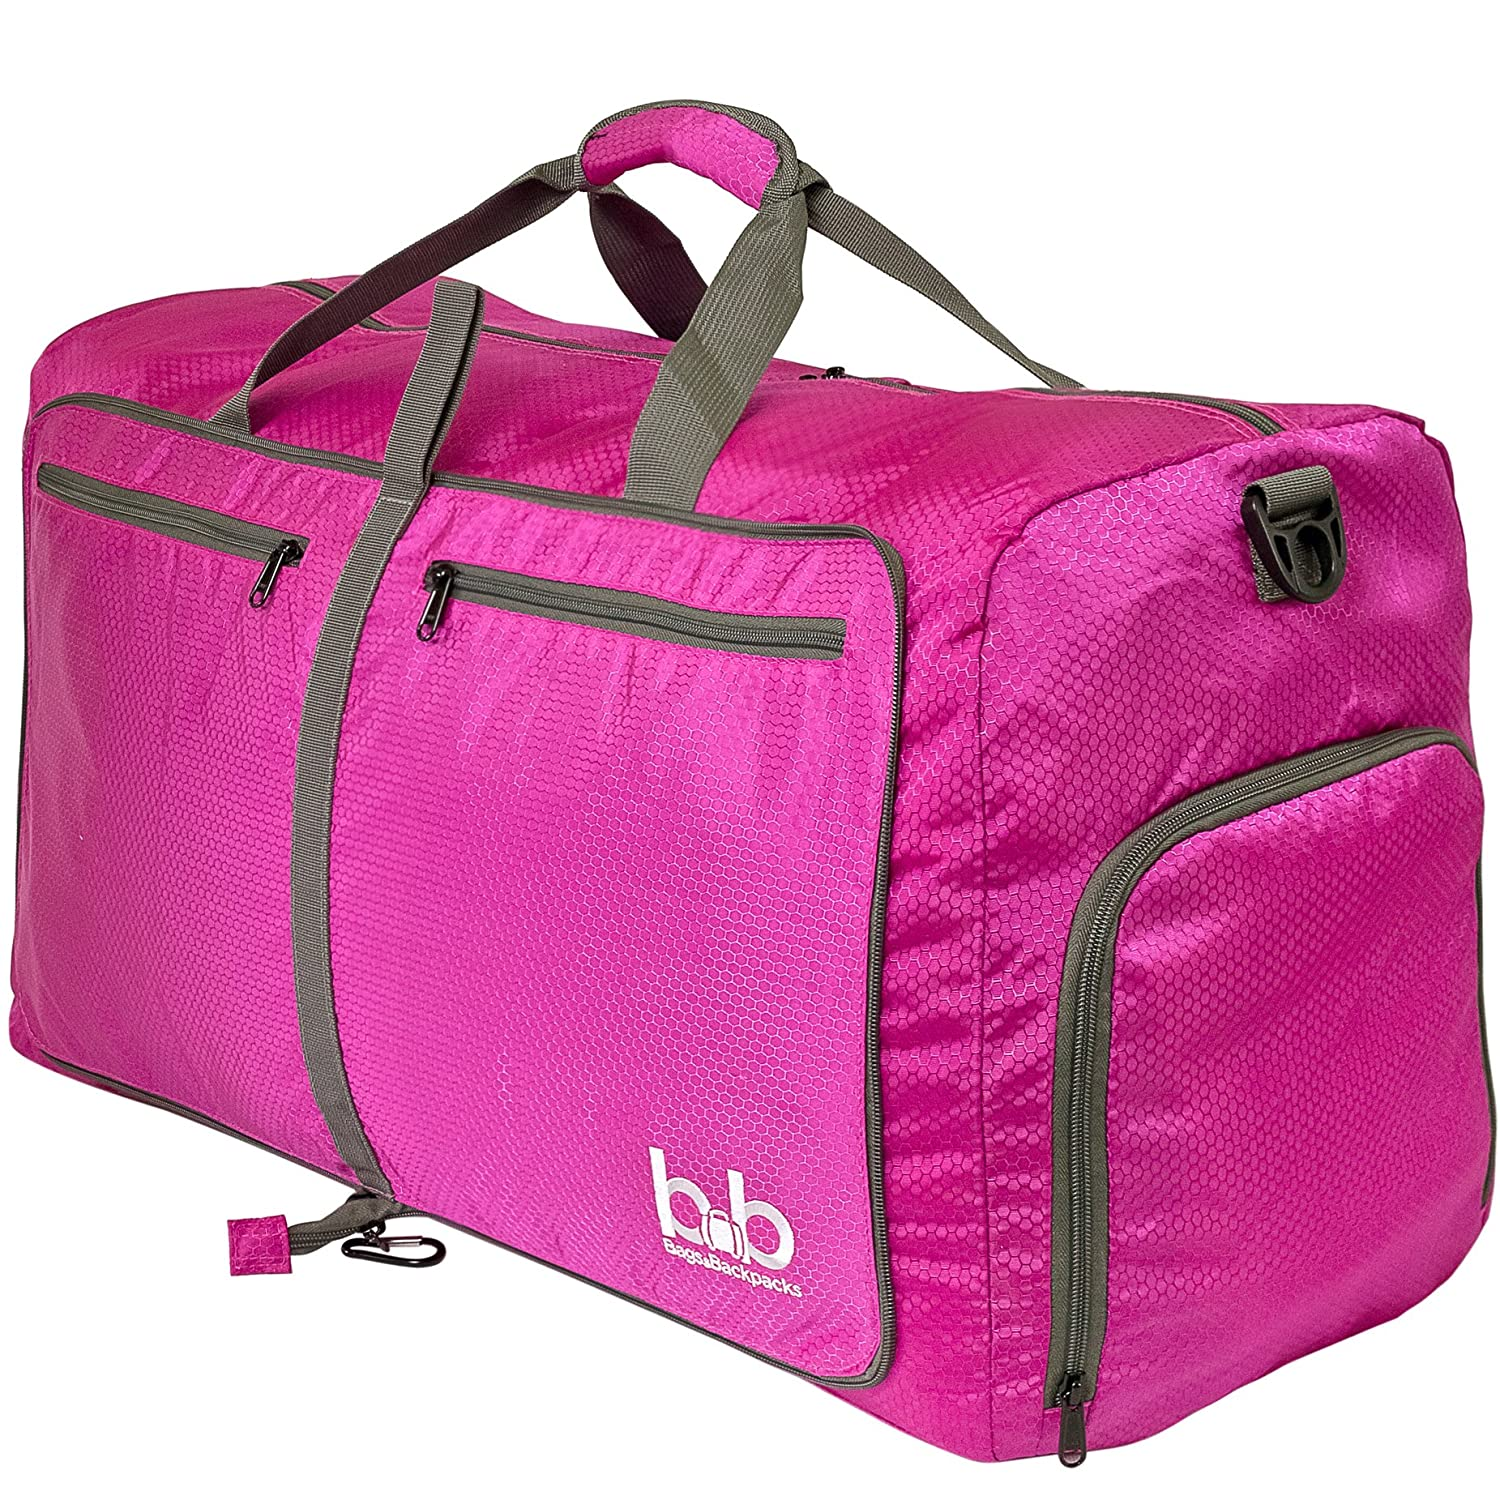 b5fb2a5ad Amazon.com: BB Duffle Bag with Pockets for Women and Men - Travel Duffel  Bags for Gym Sports: BB Bags&Backpacks